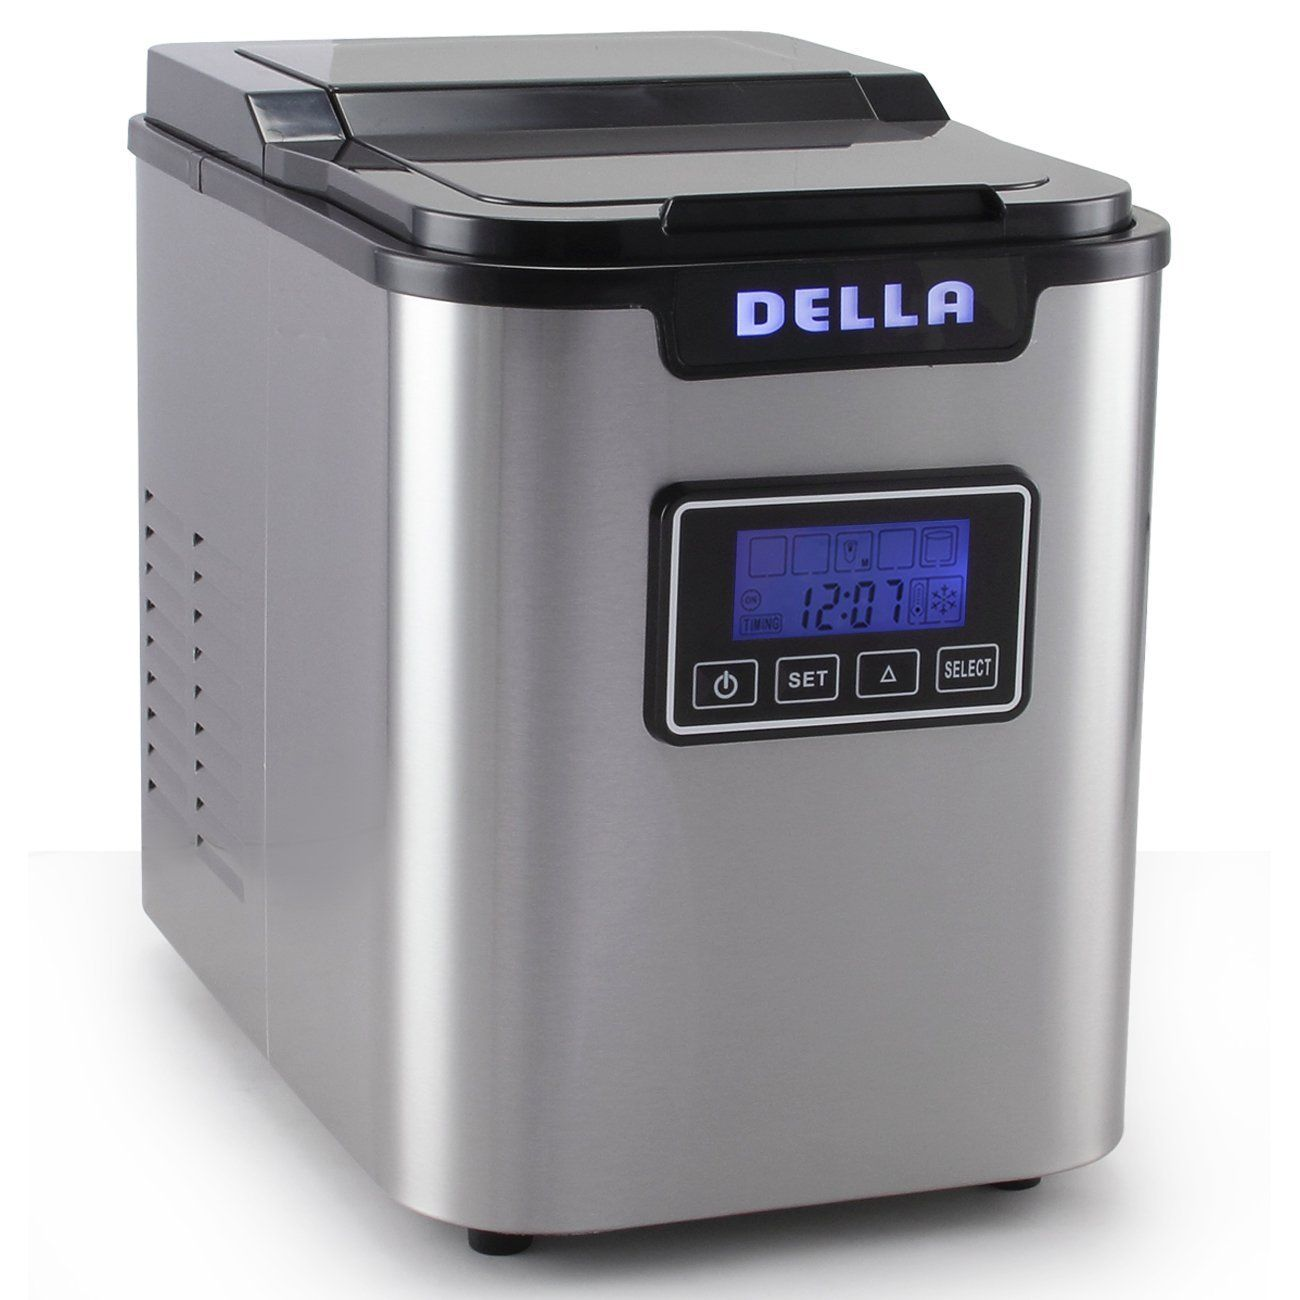 Della 048 Gm 48227 Electric Ice Maker Machine Express 26lbs Day